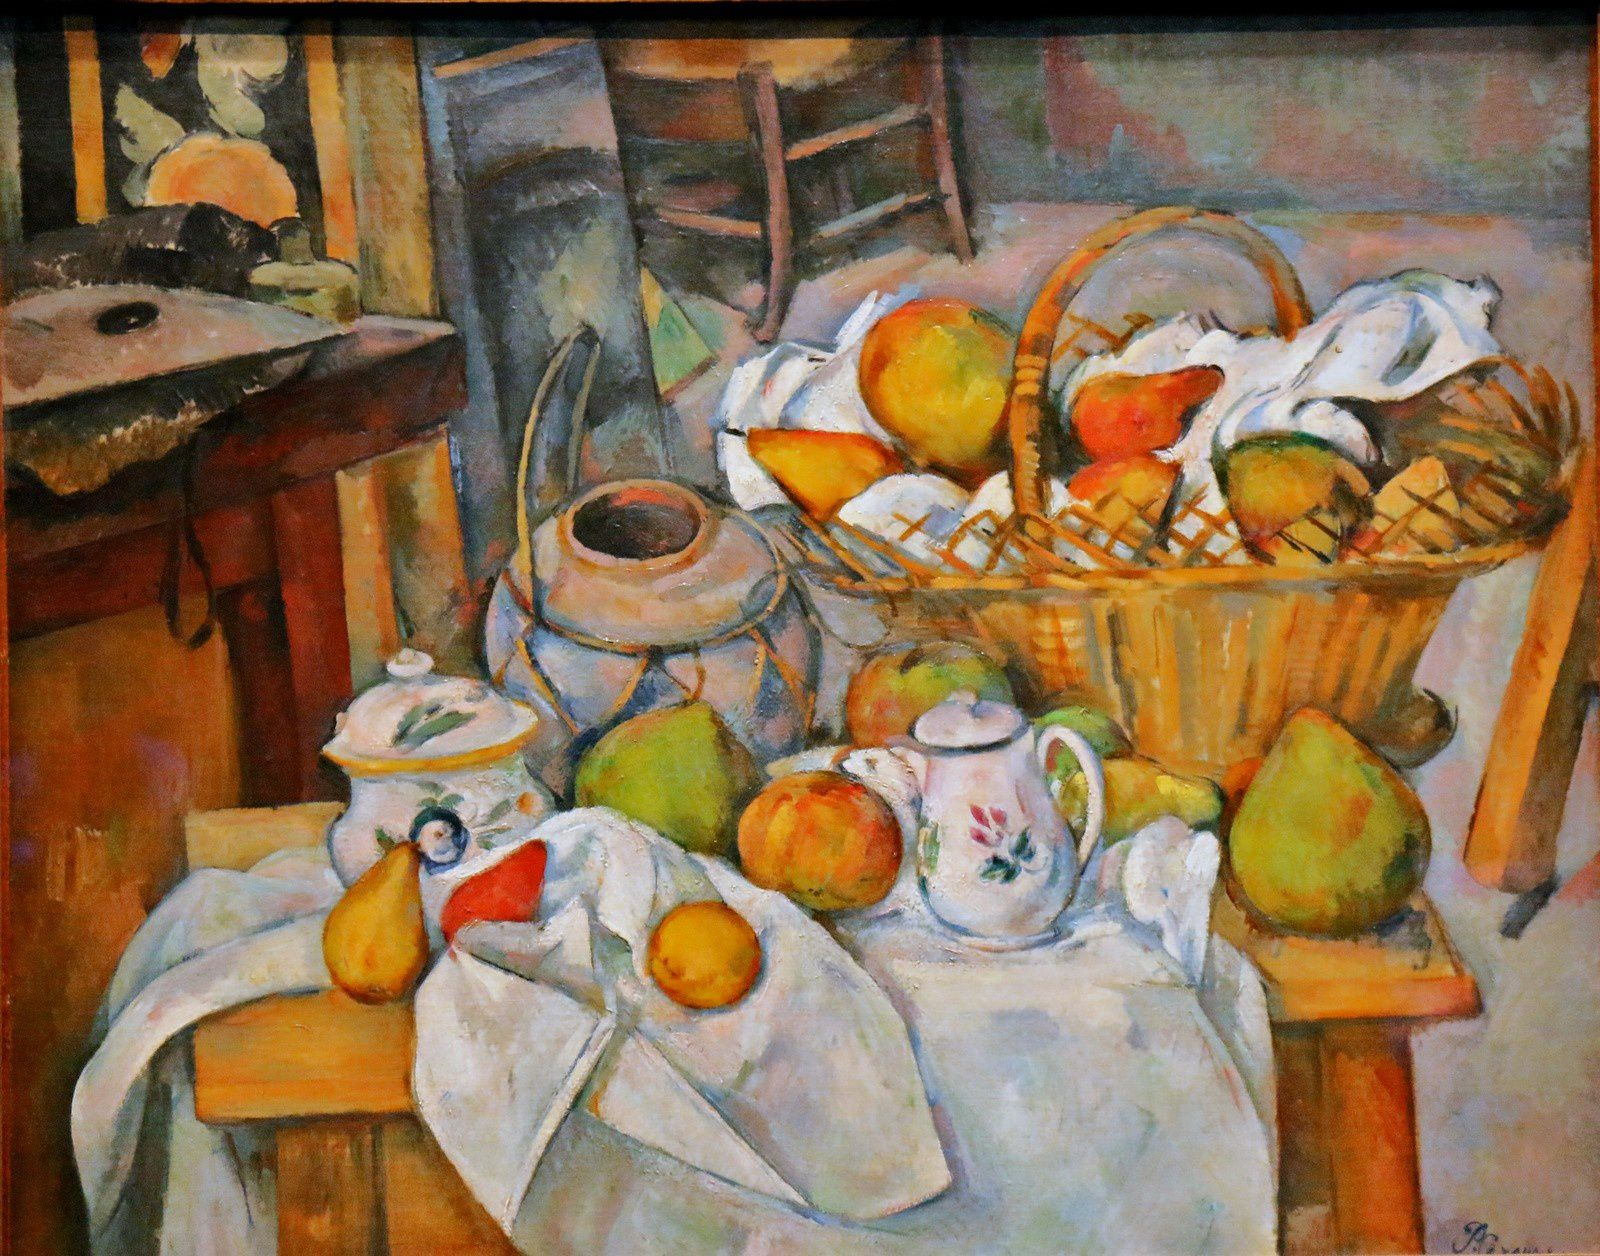 Paul Cézanne, La table de cuisine